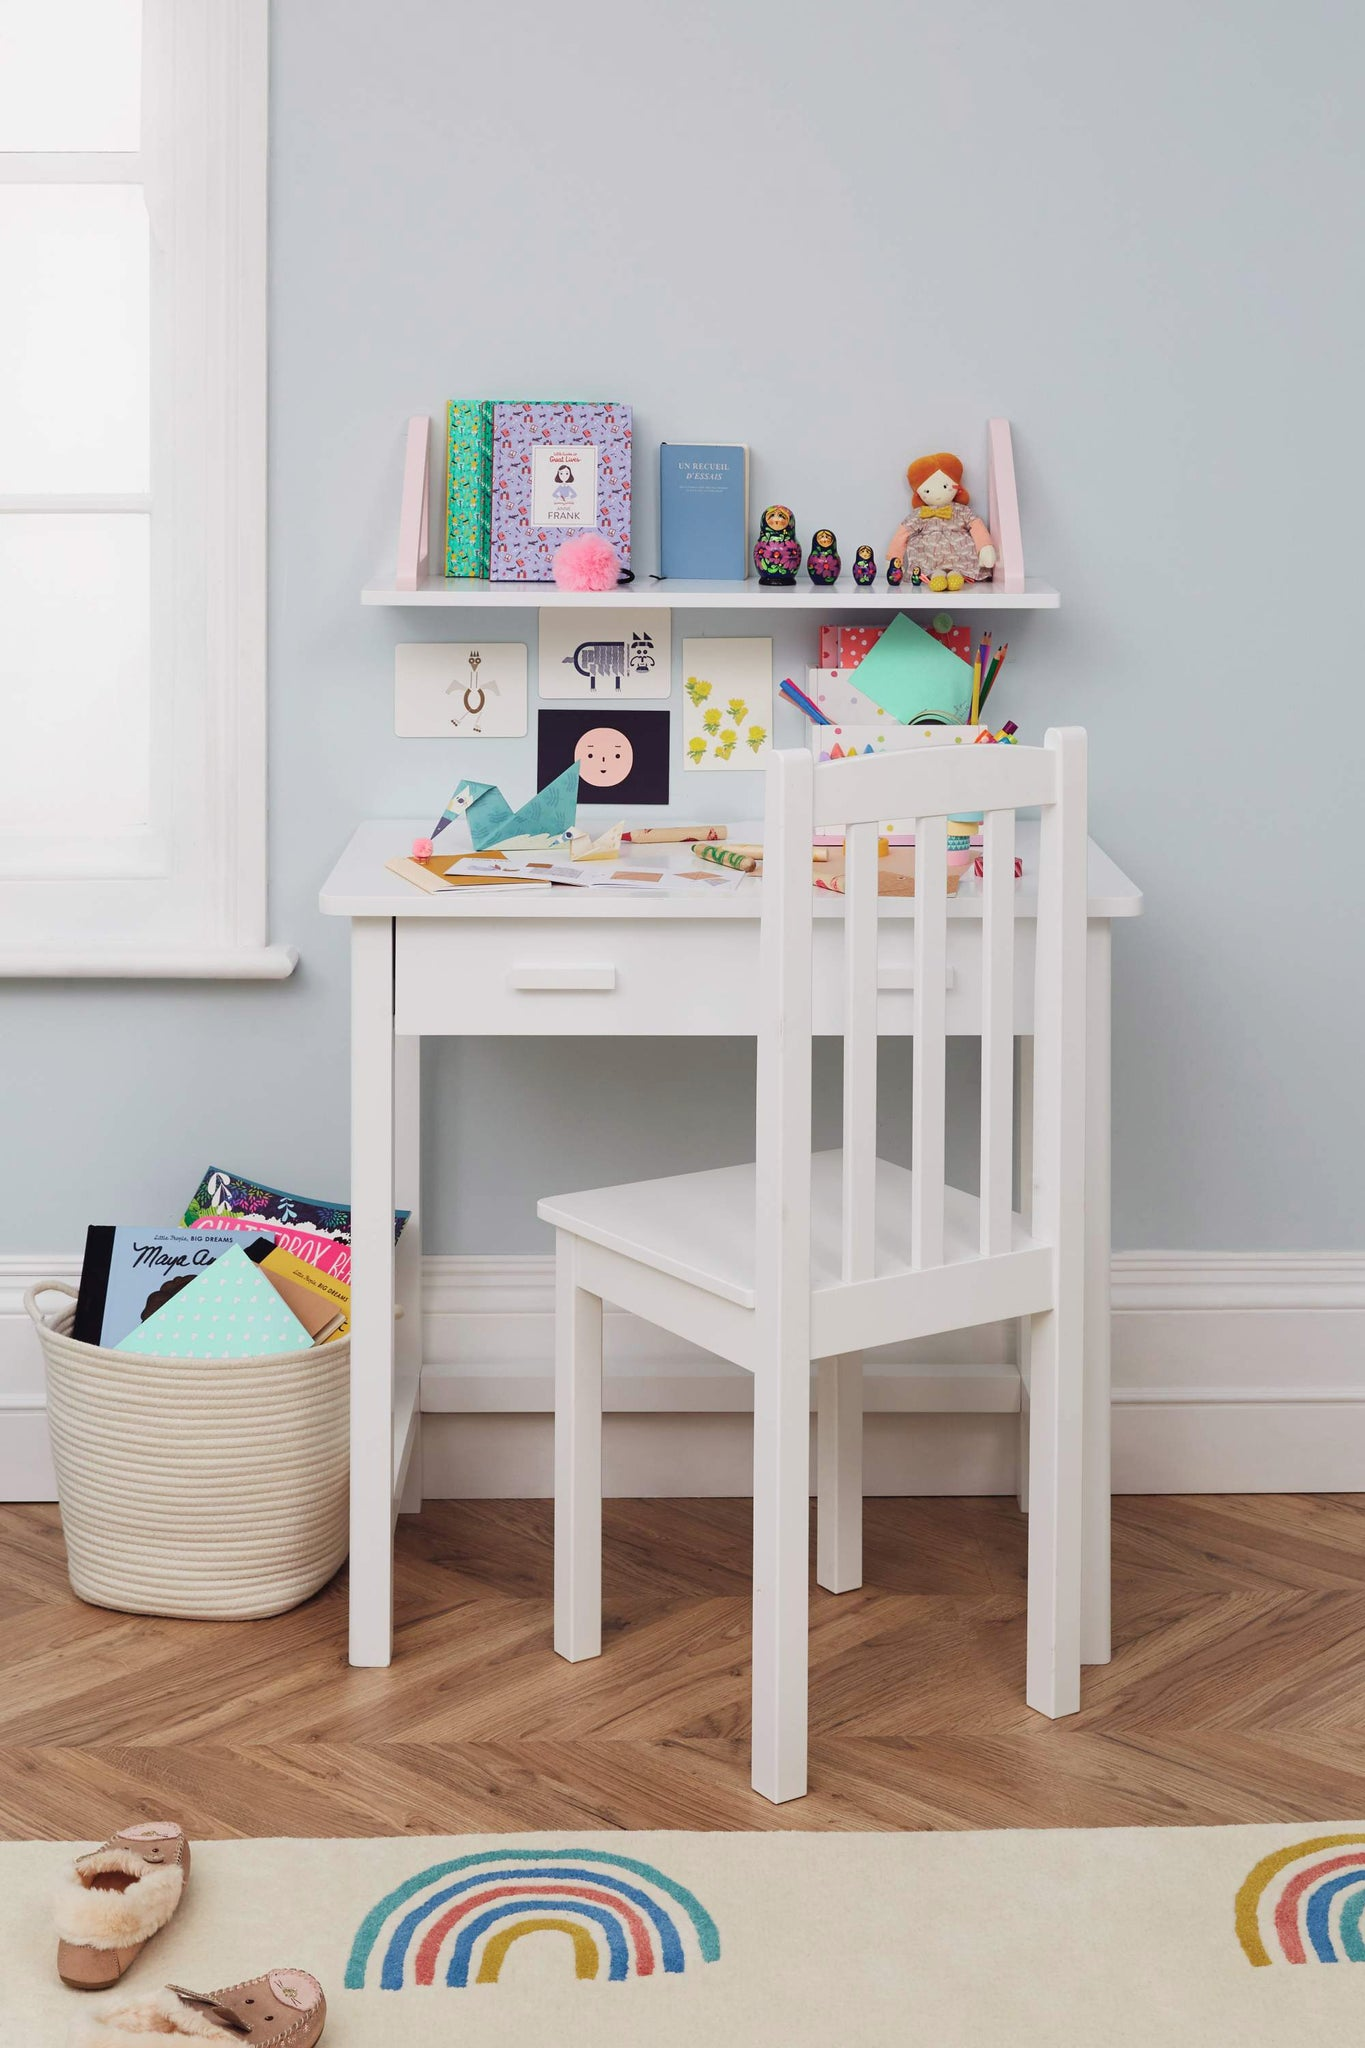 Tidy up toys and organise your home this spring